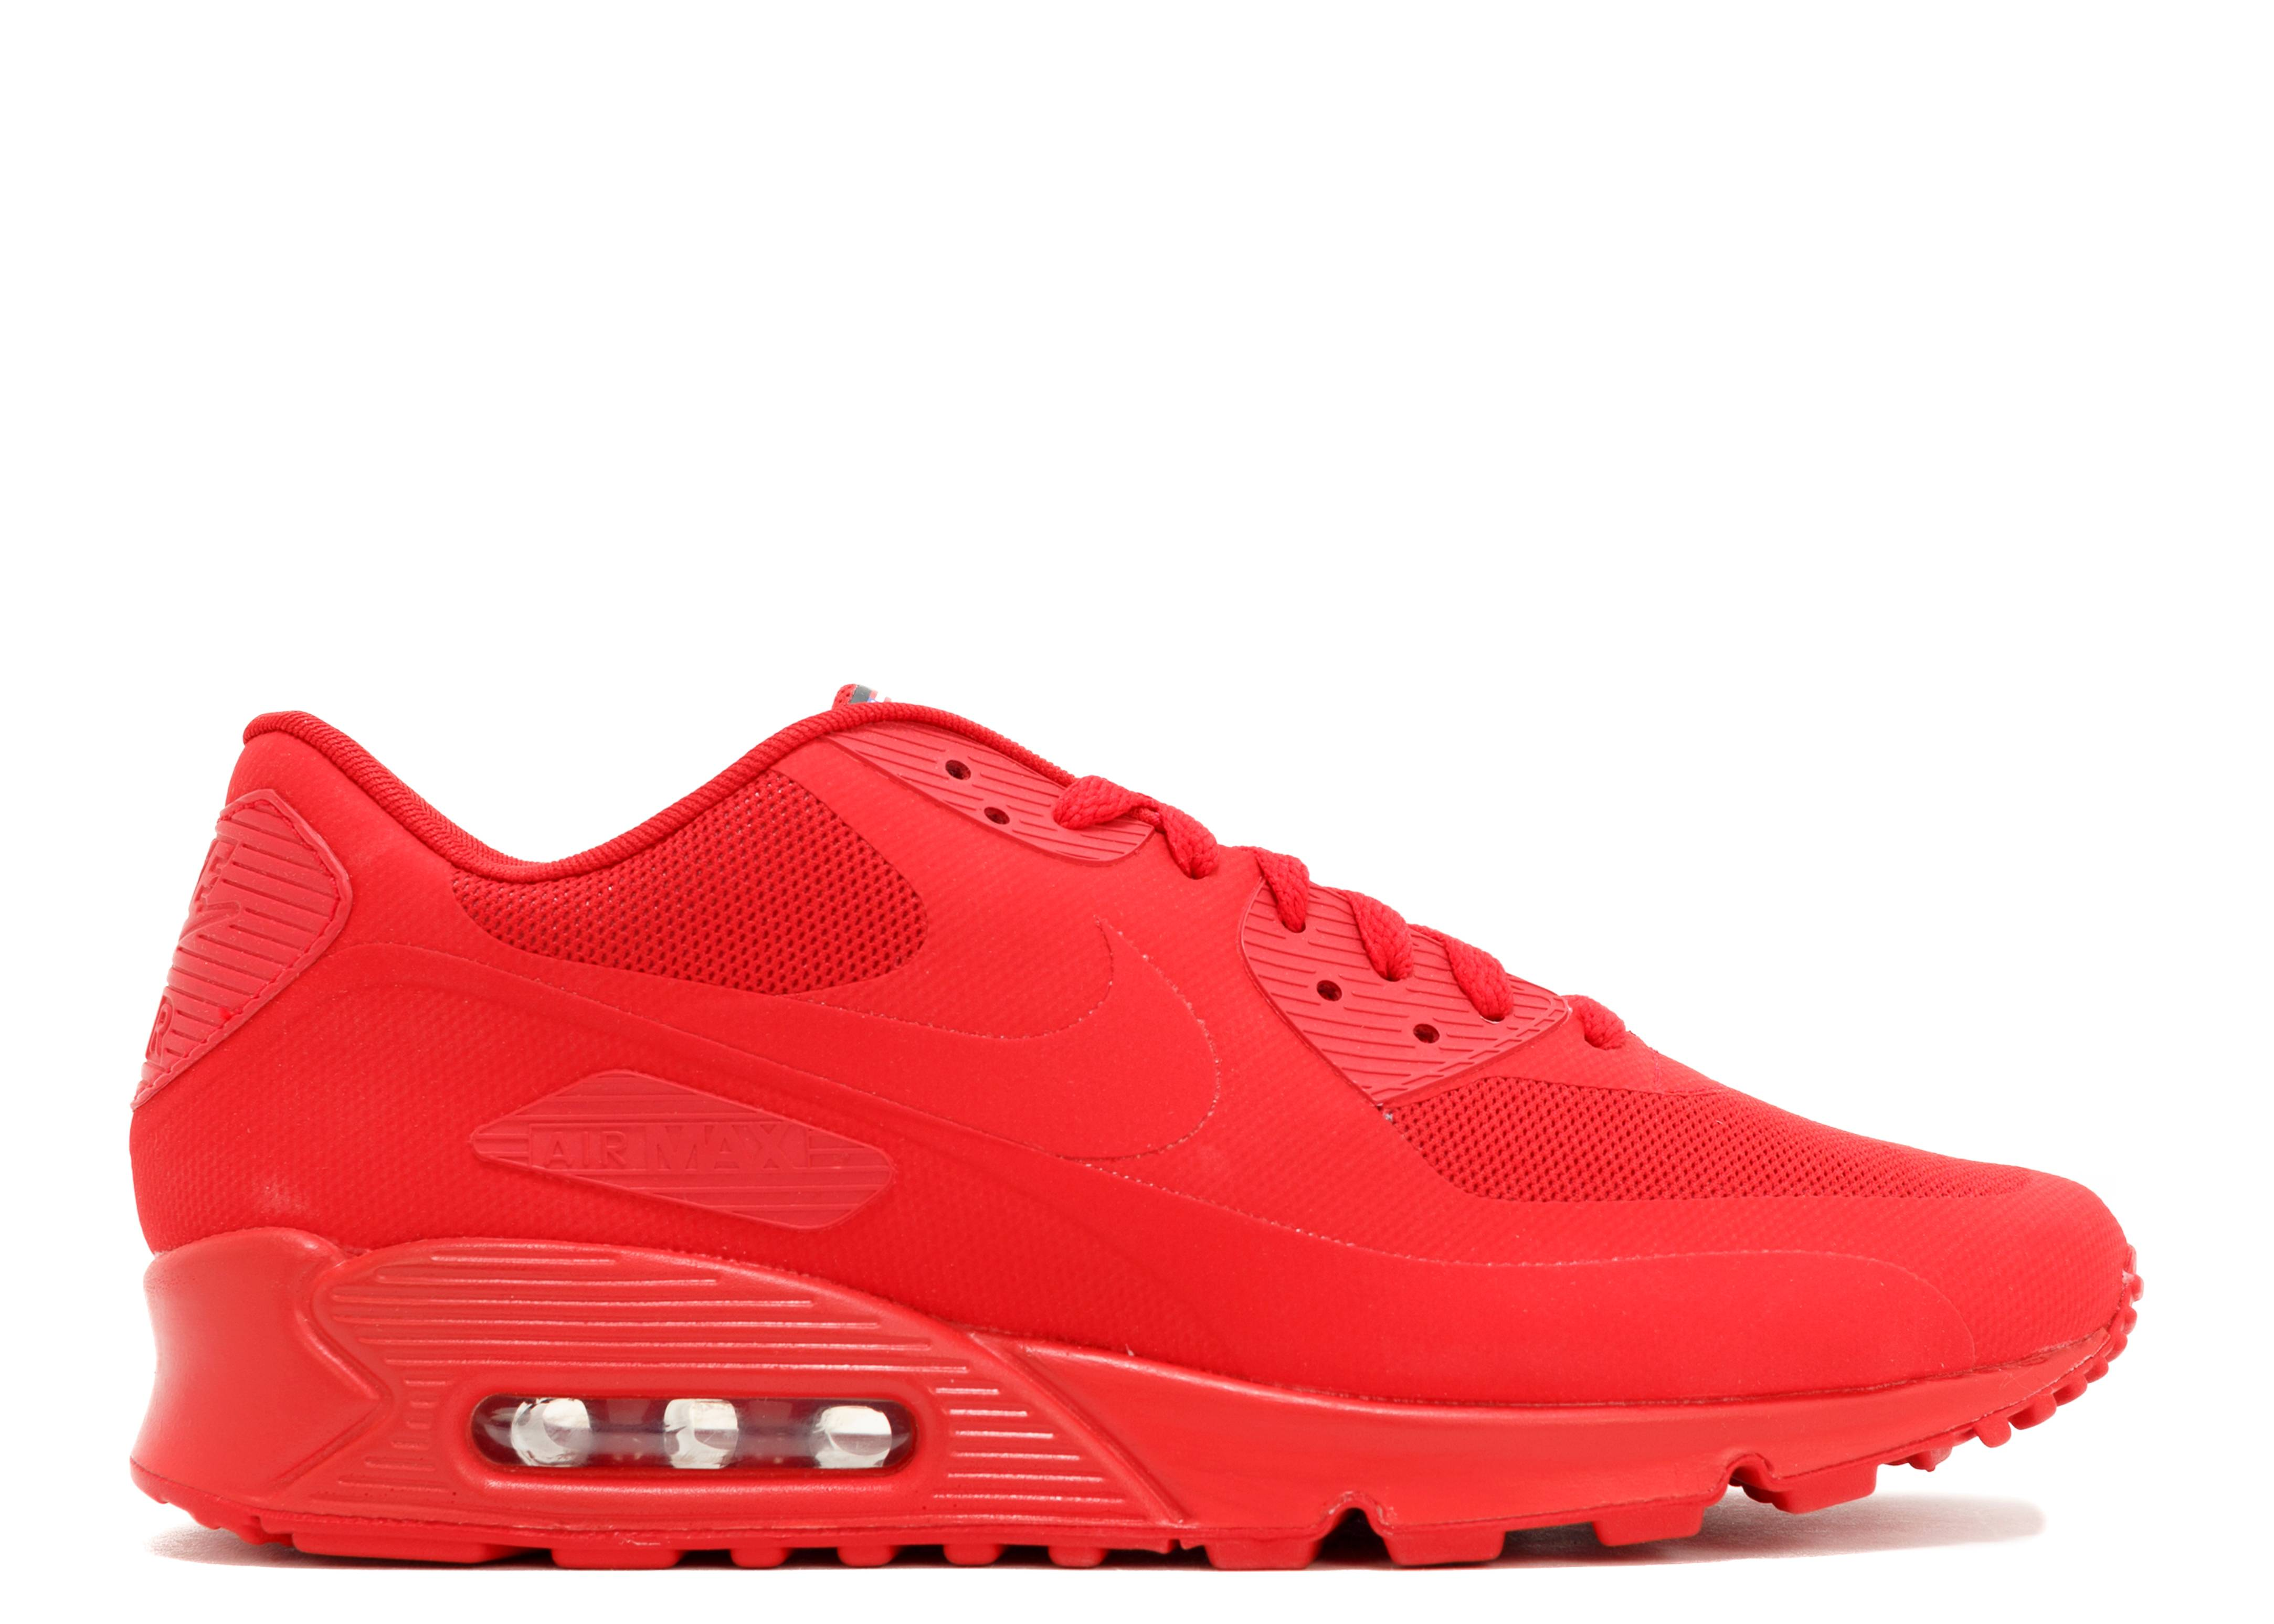 new products ff536 f9e94 ... discount air max 90 hyp qs usa nike 613841 660 sport red sport red  flight club